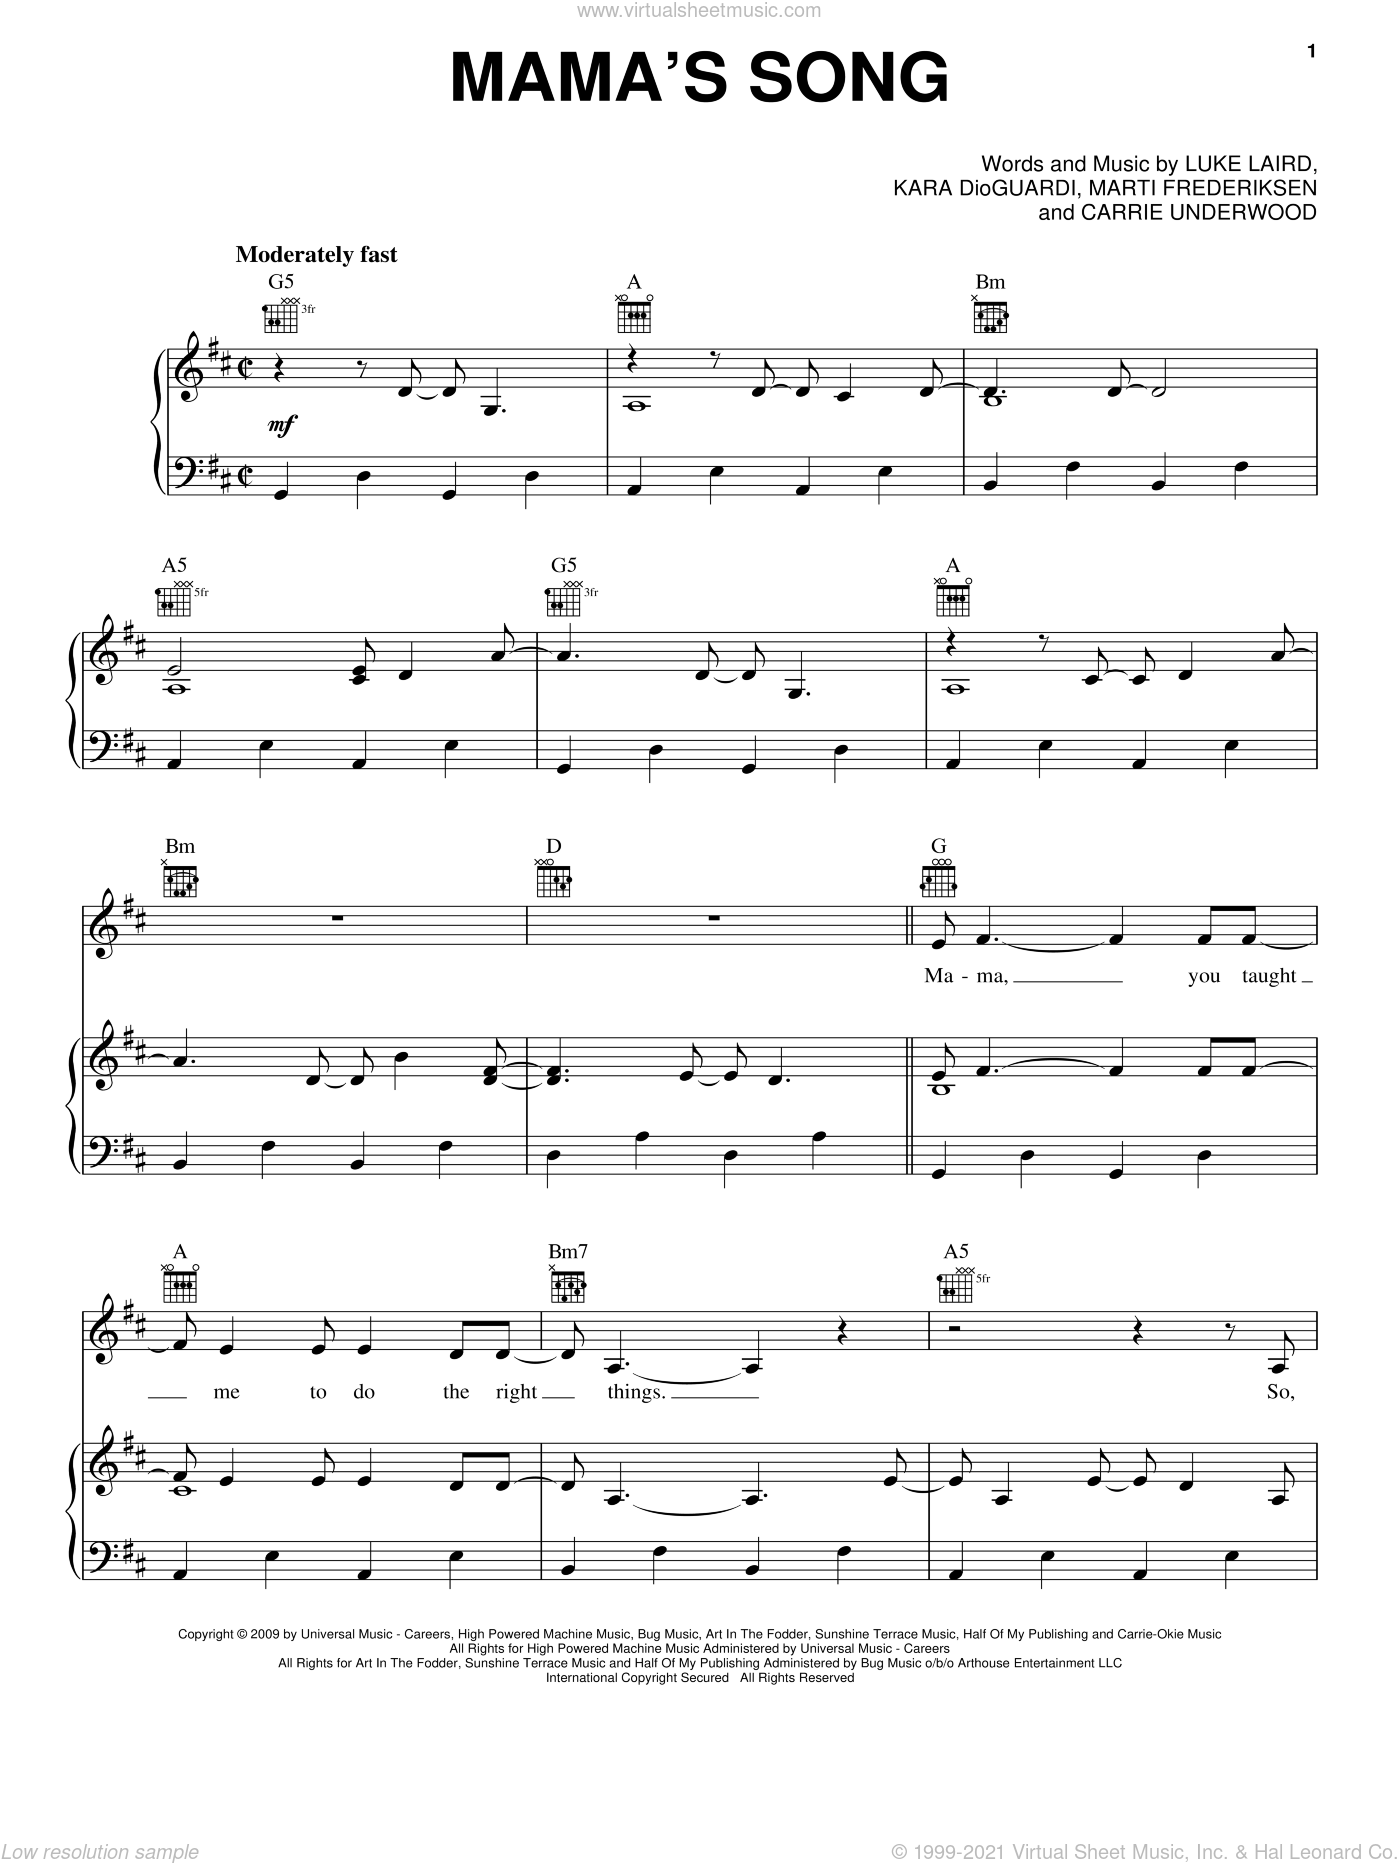 Mama's Song sheet music for voice, piano or guitar by Marti Frederiksen, Carrie Underwood, Kara DioGuardi and Luke Laird. Score Image Preview.